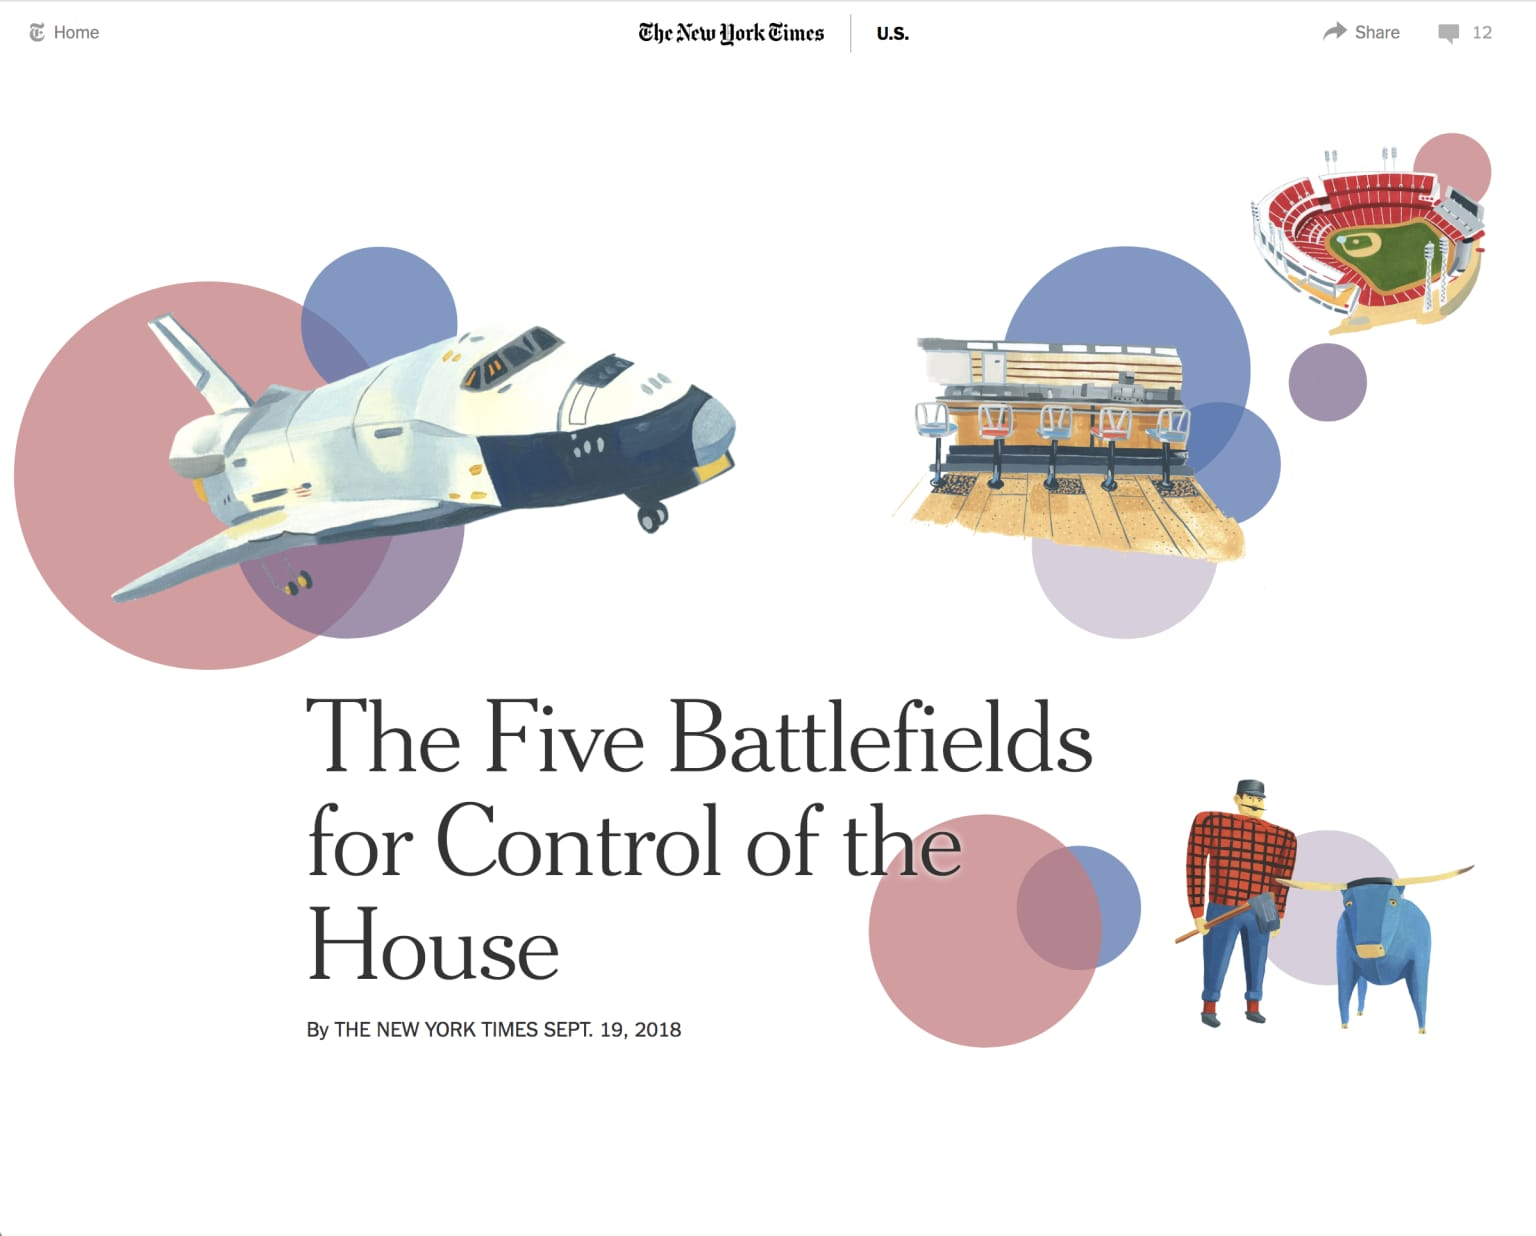 Five Battlefields for Control of the House